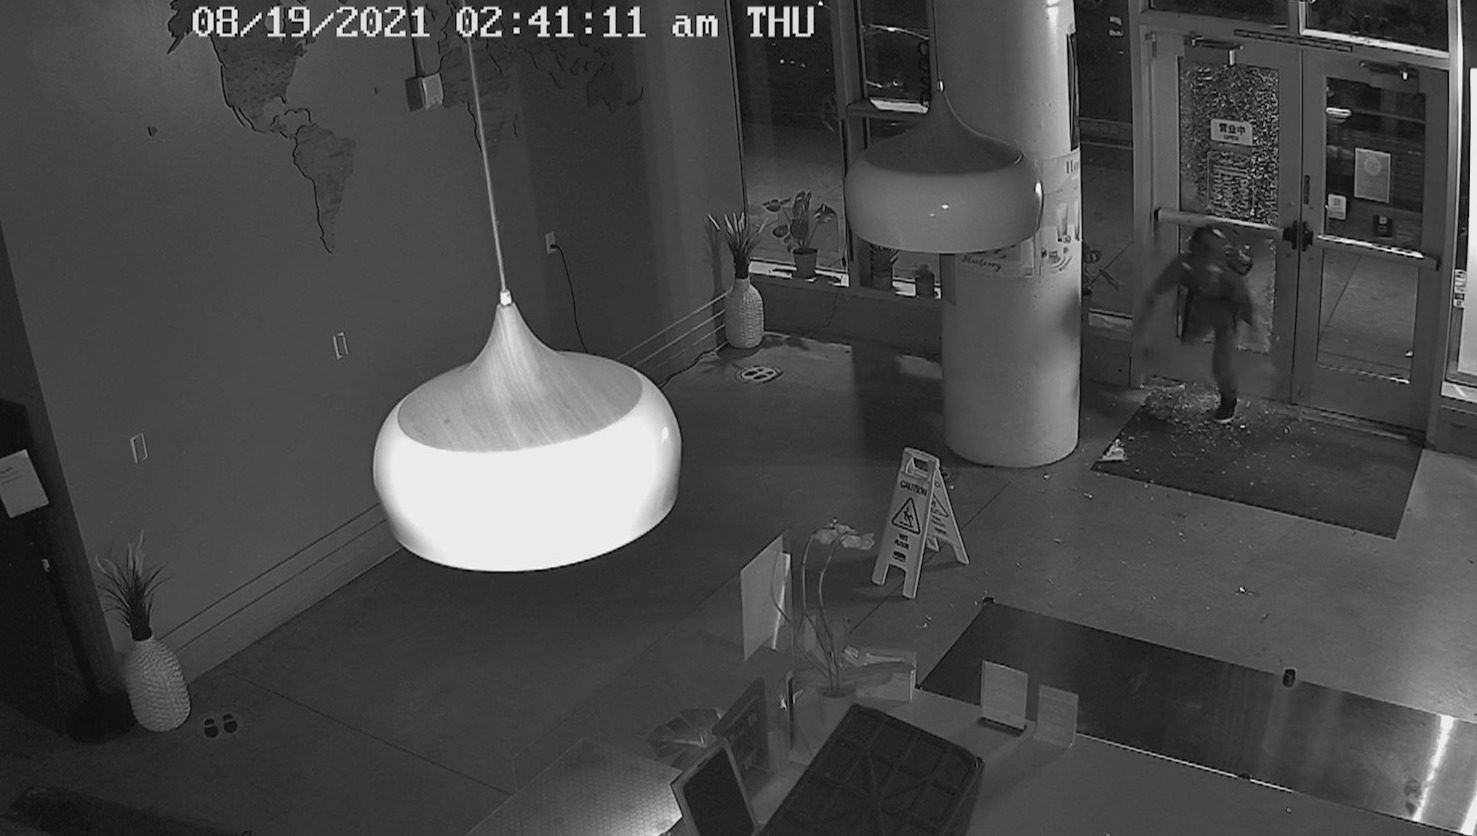 Caught on camera: Door smashed, items stolen from Ding Tea PSU